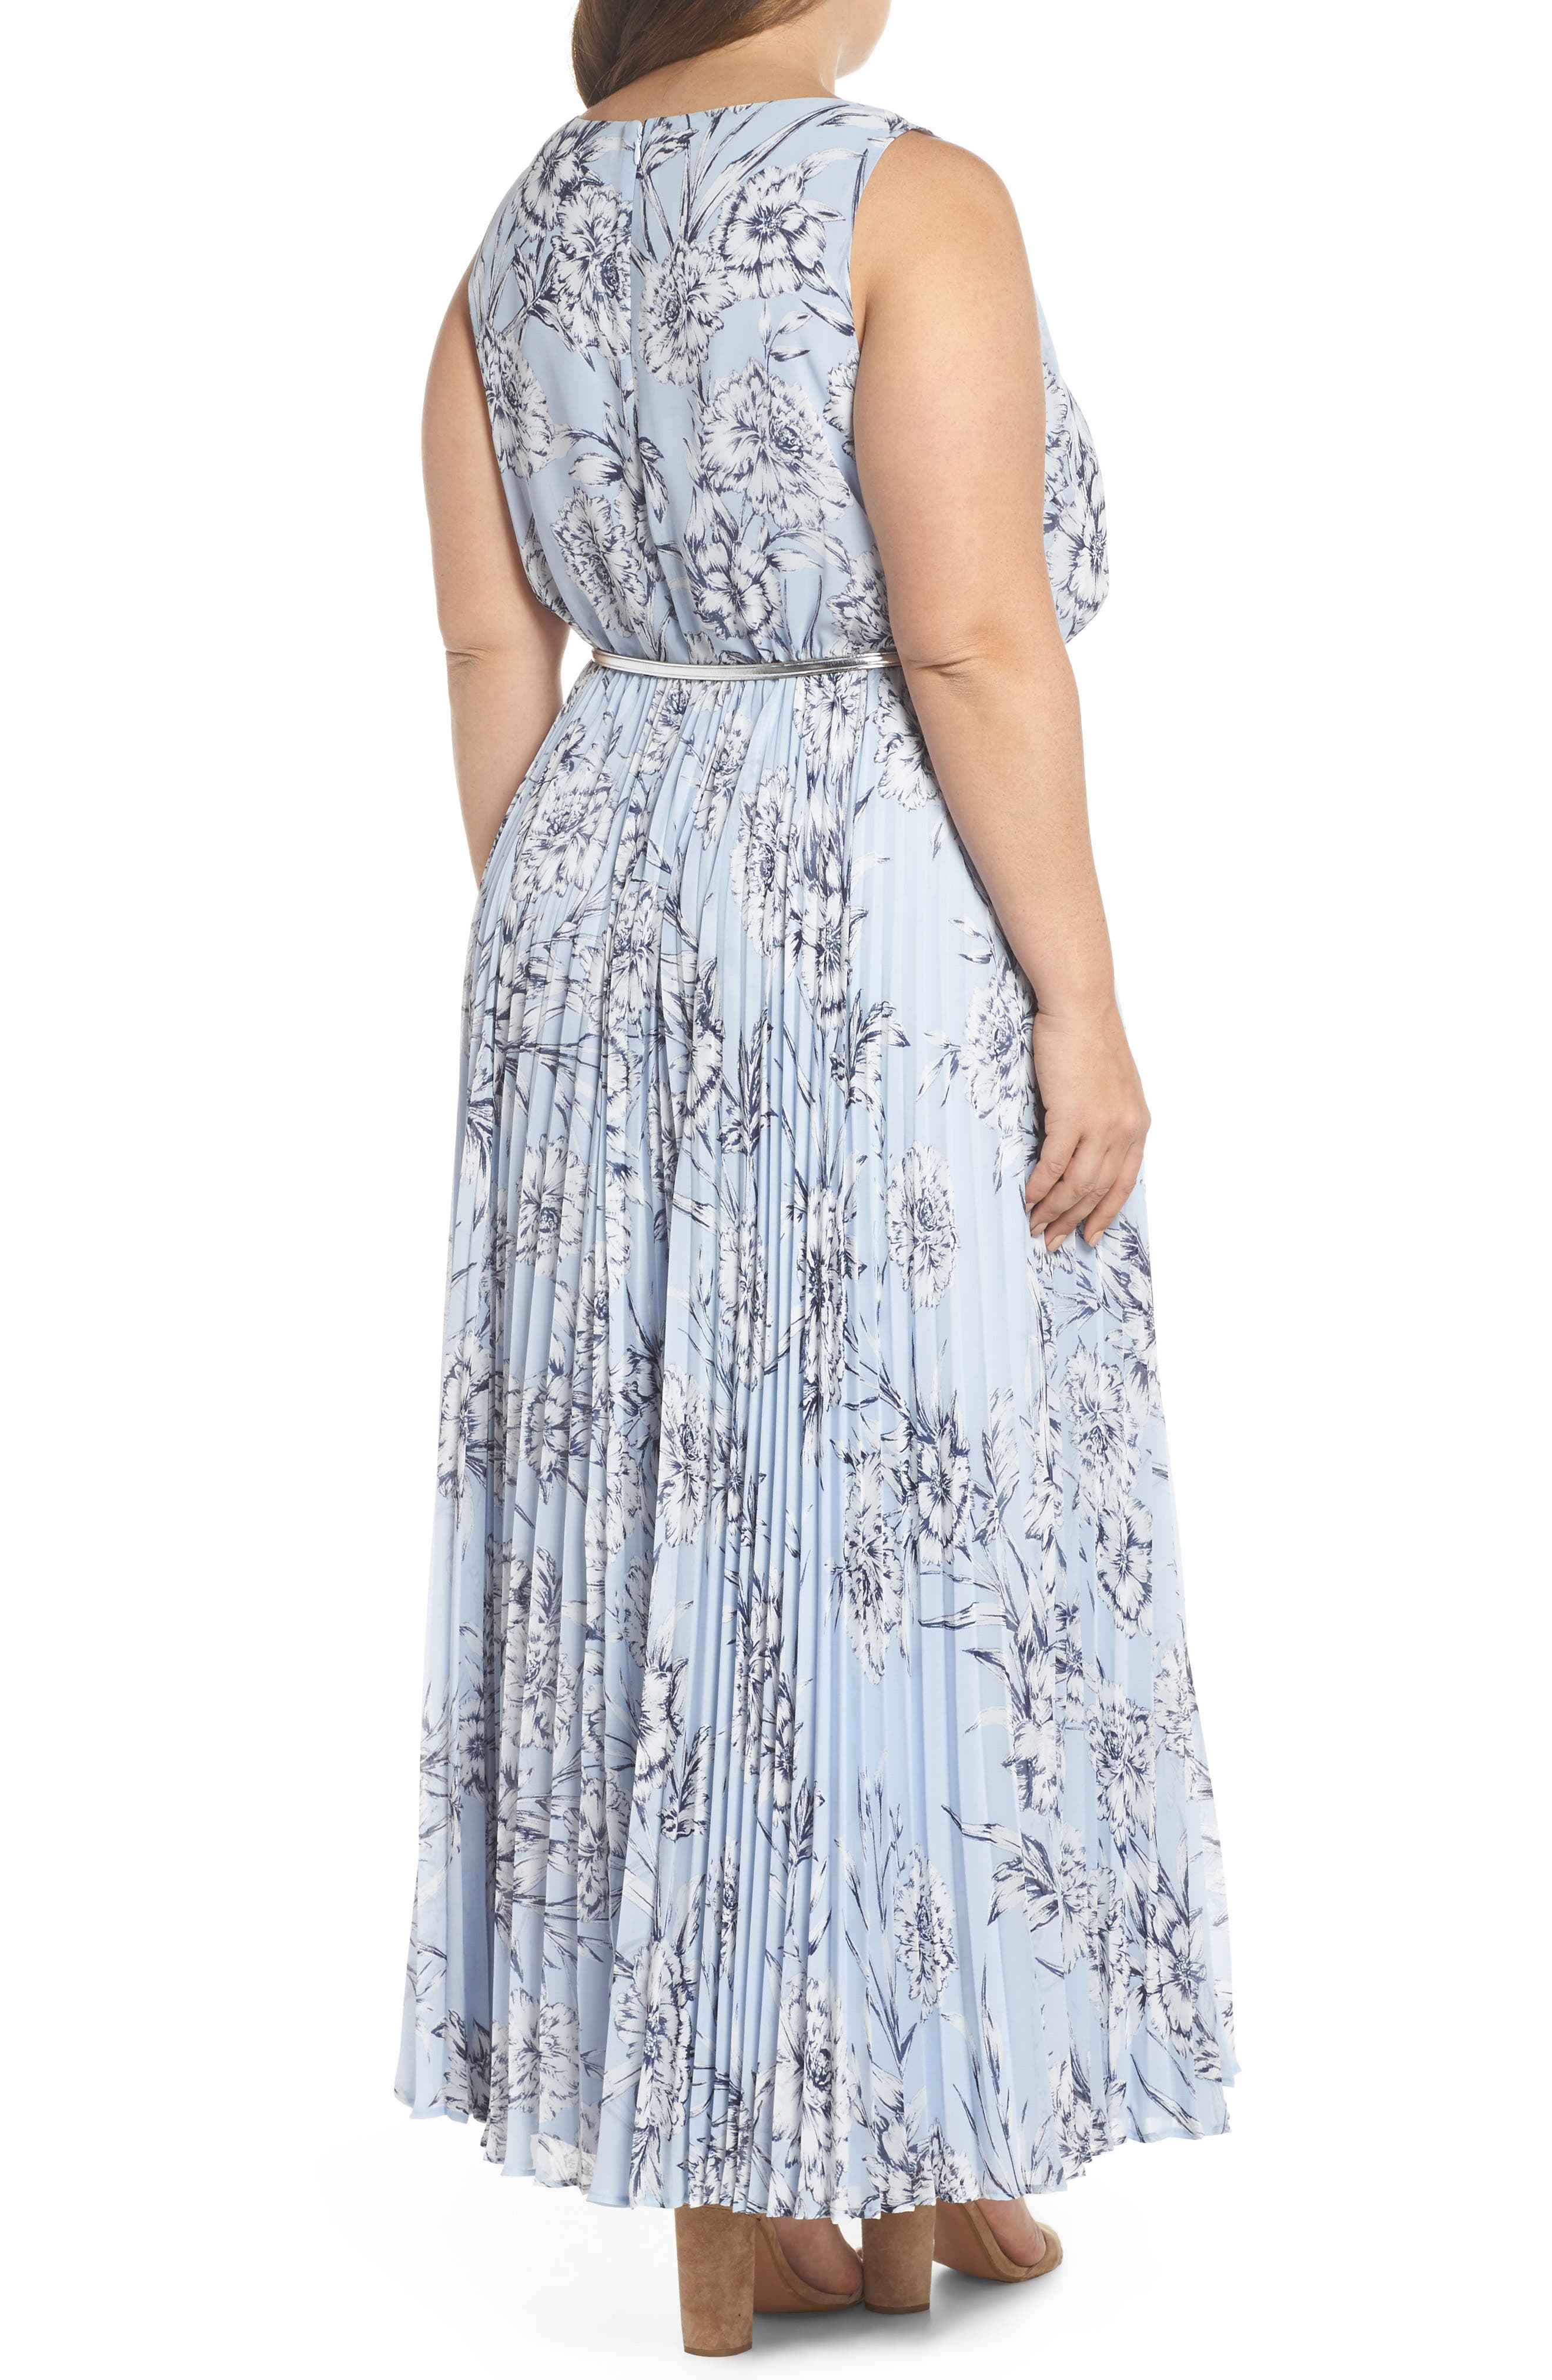 Belted Floral Maxi Dress,                             Alternate thumbnail 2, color,                             Blue